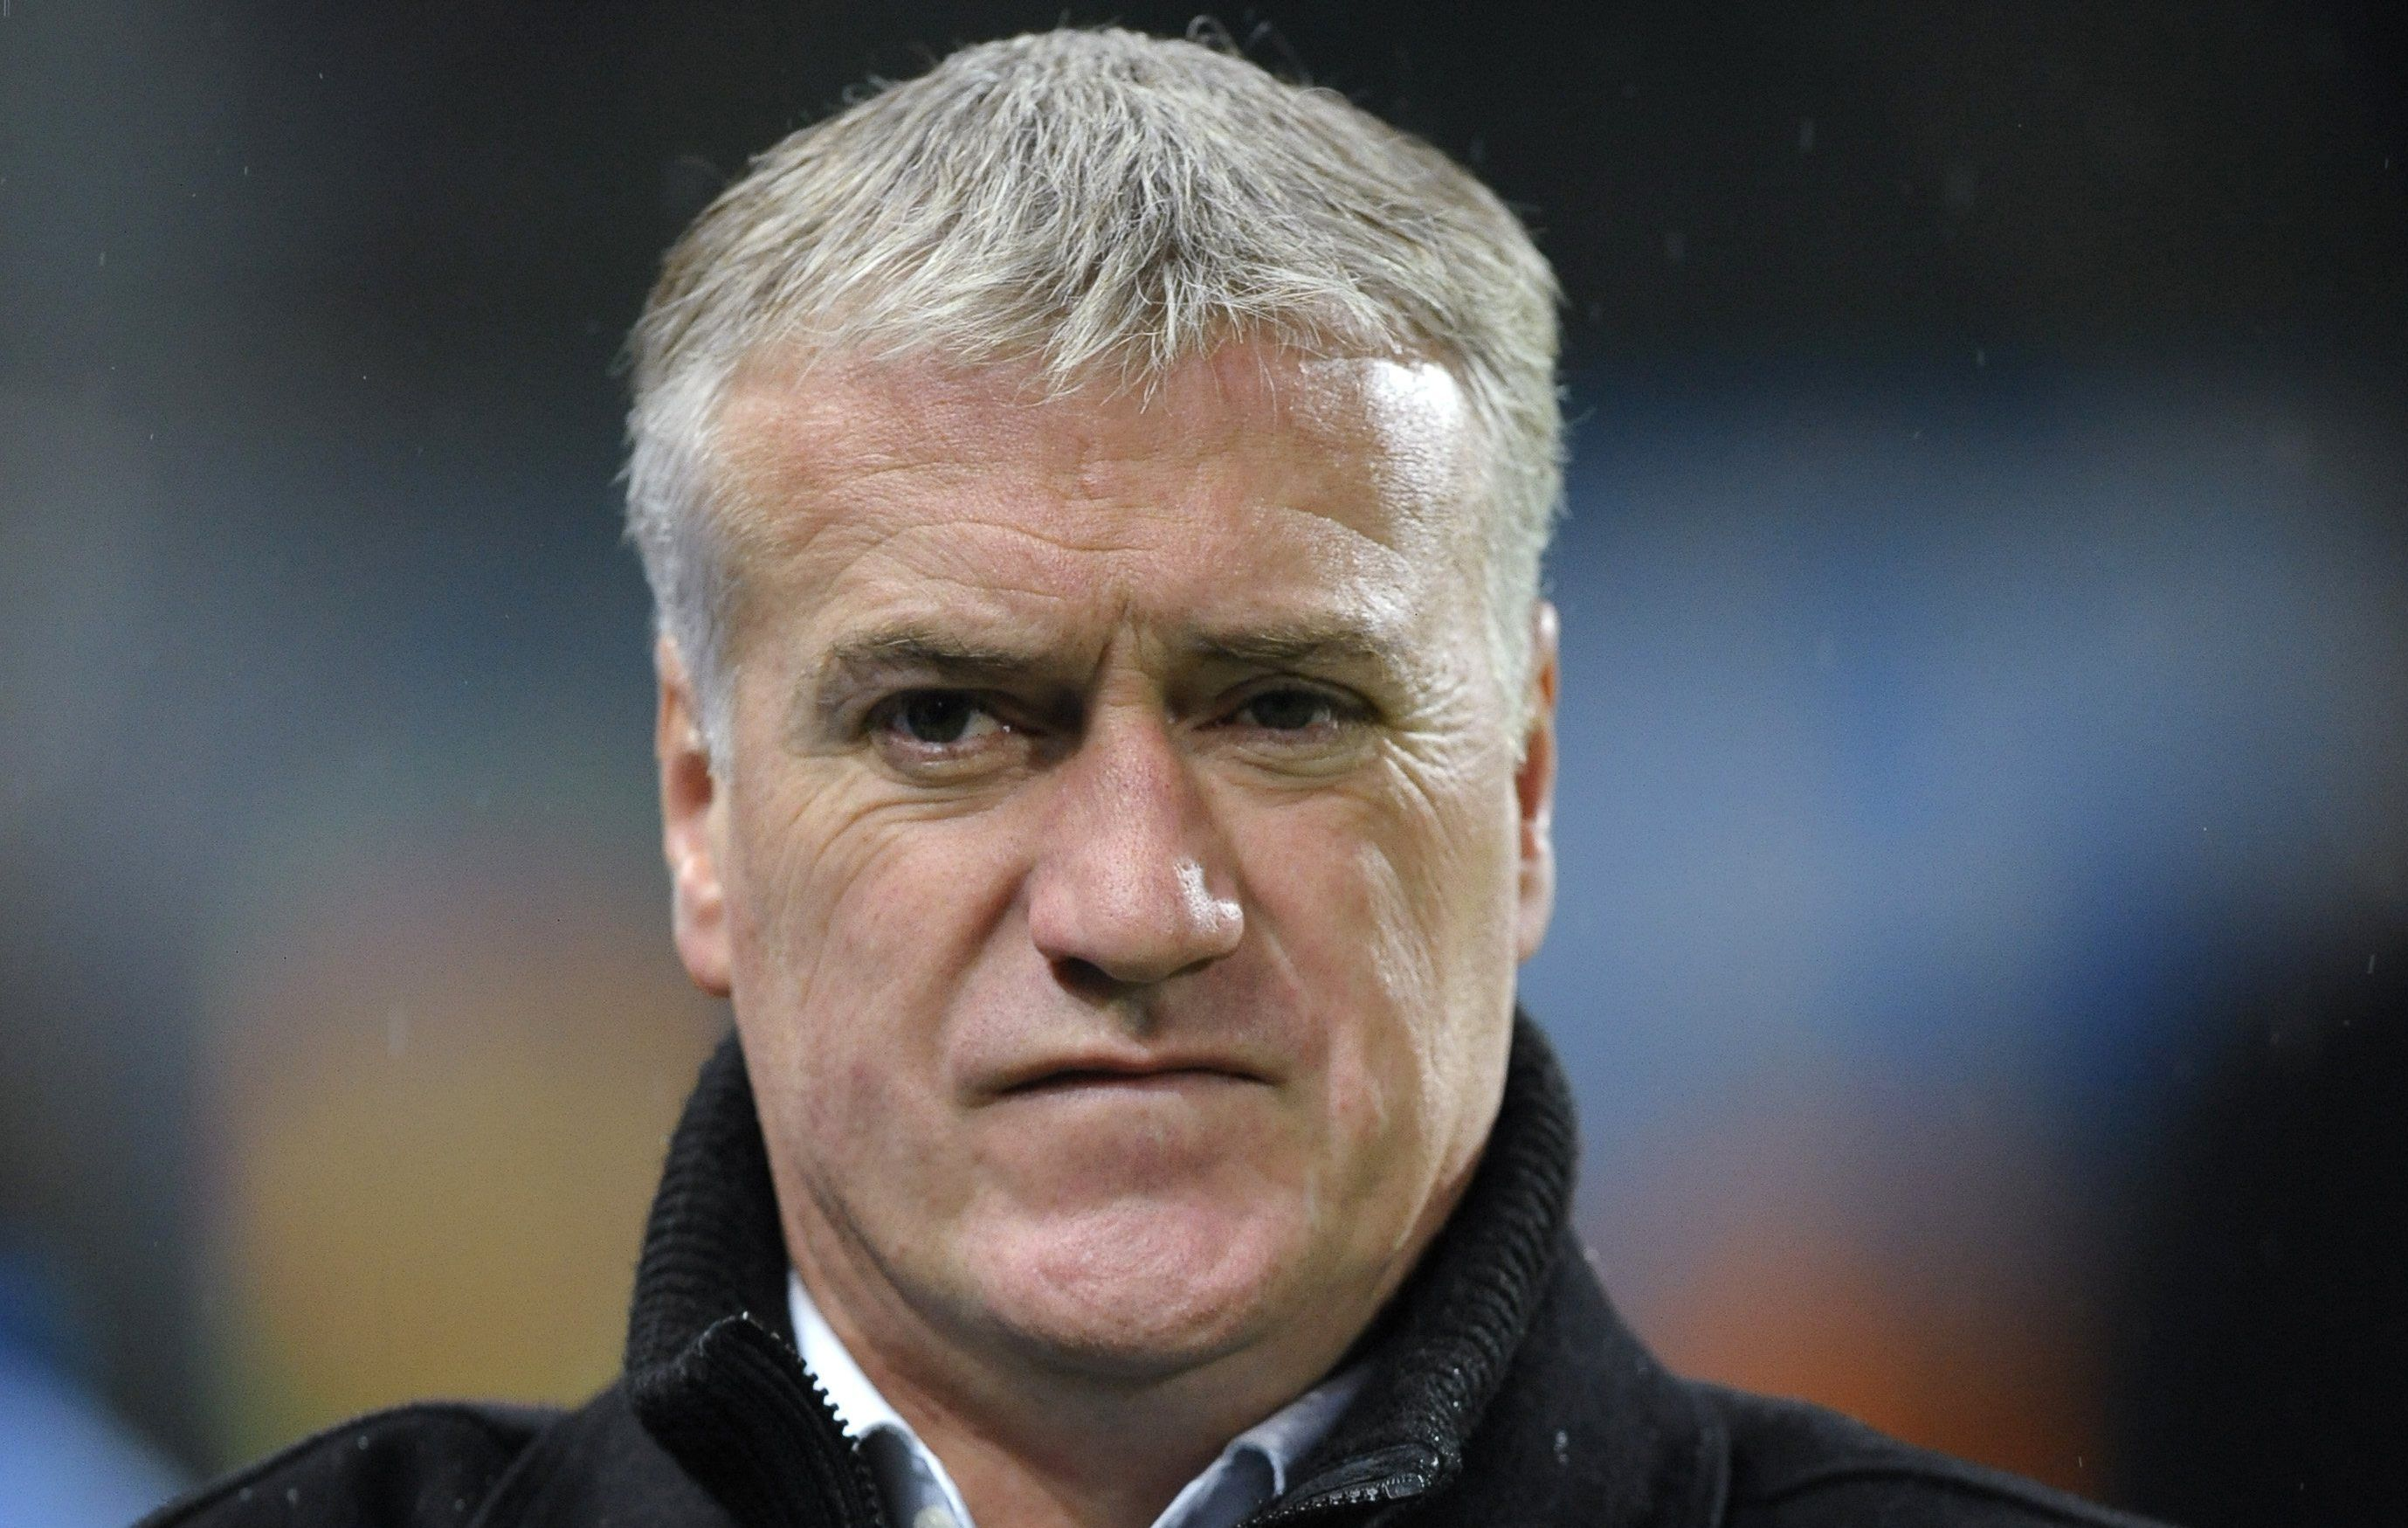 Didier Deschamps earned a  million dollar salary - leaving the net worth at 245 million in 2018